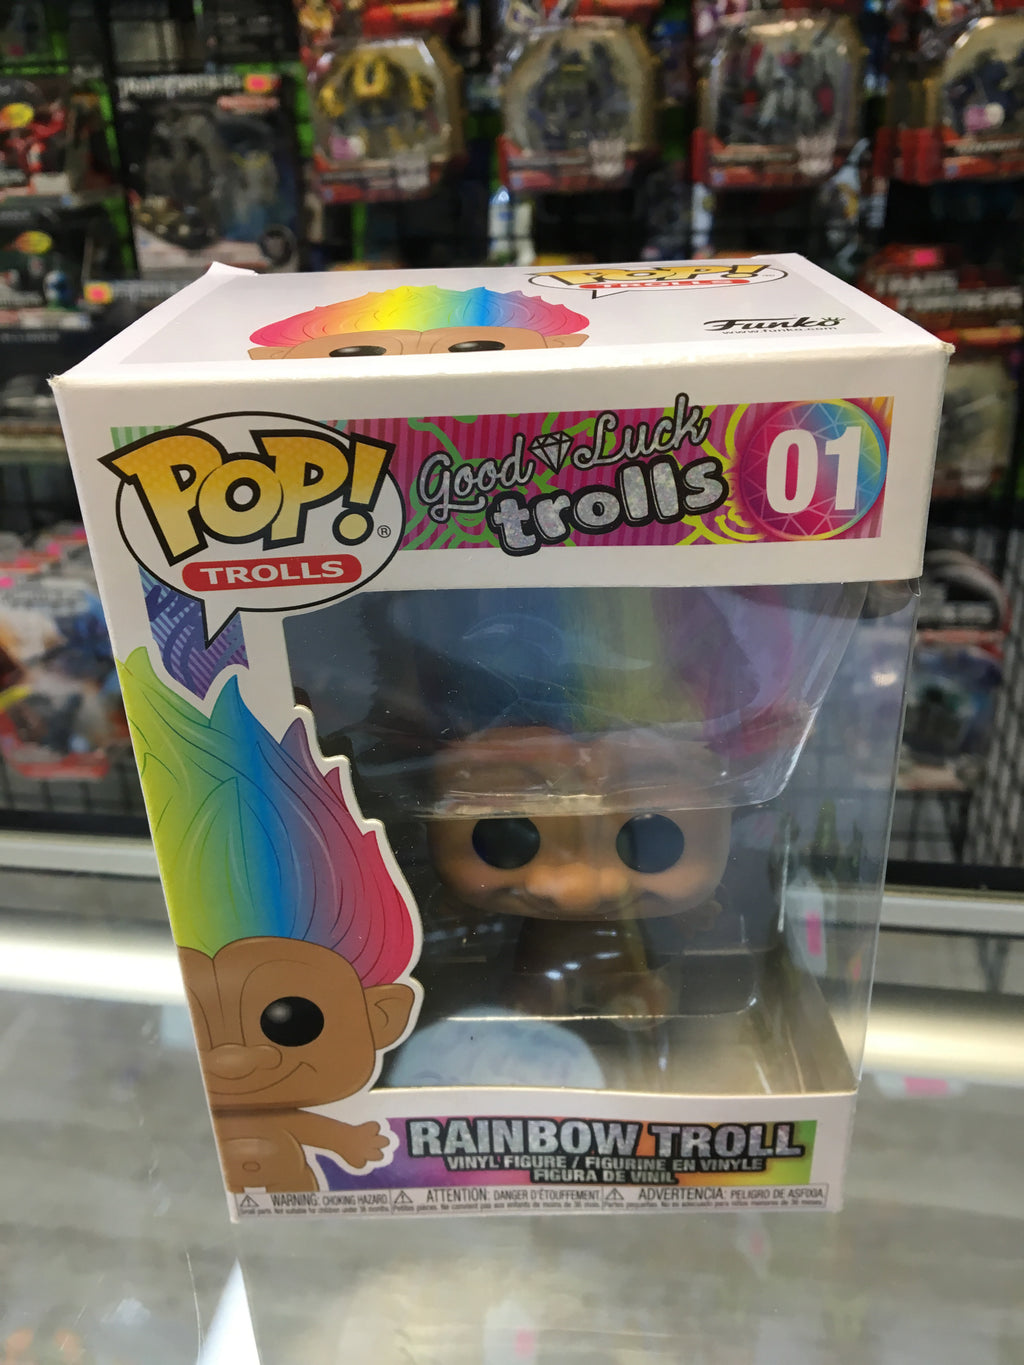 Funko Pop! Trolls, good luck trolls Rainbow Trolls 01